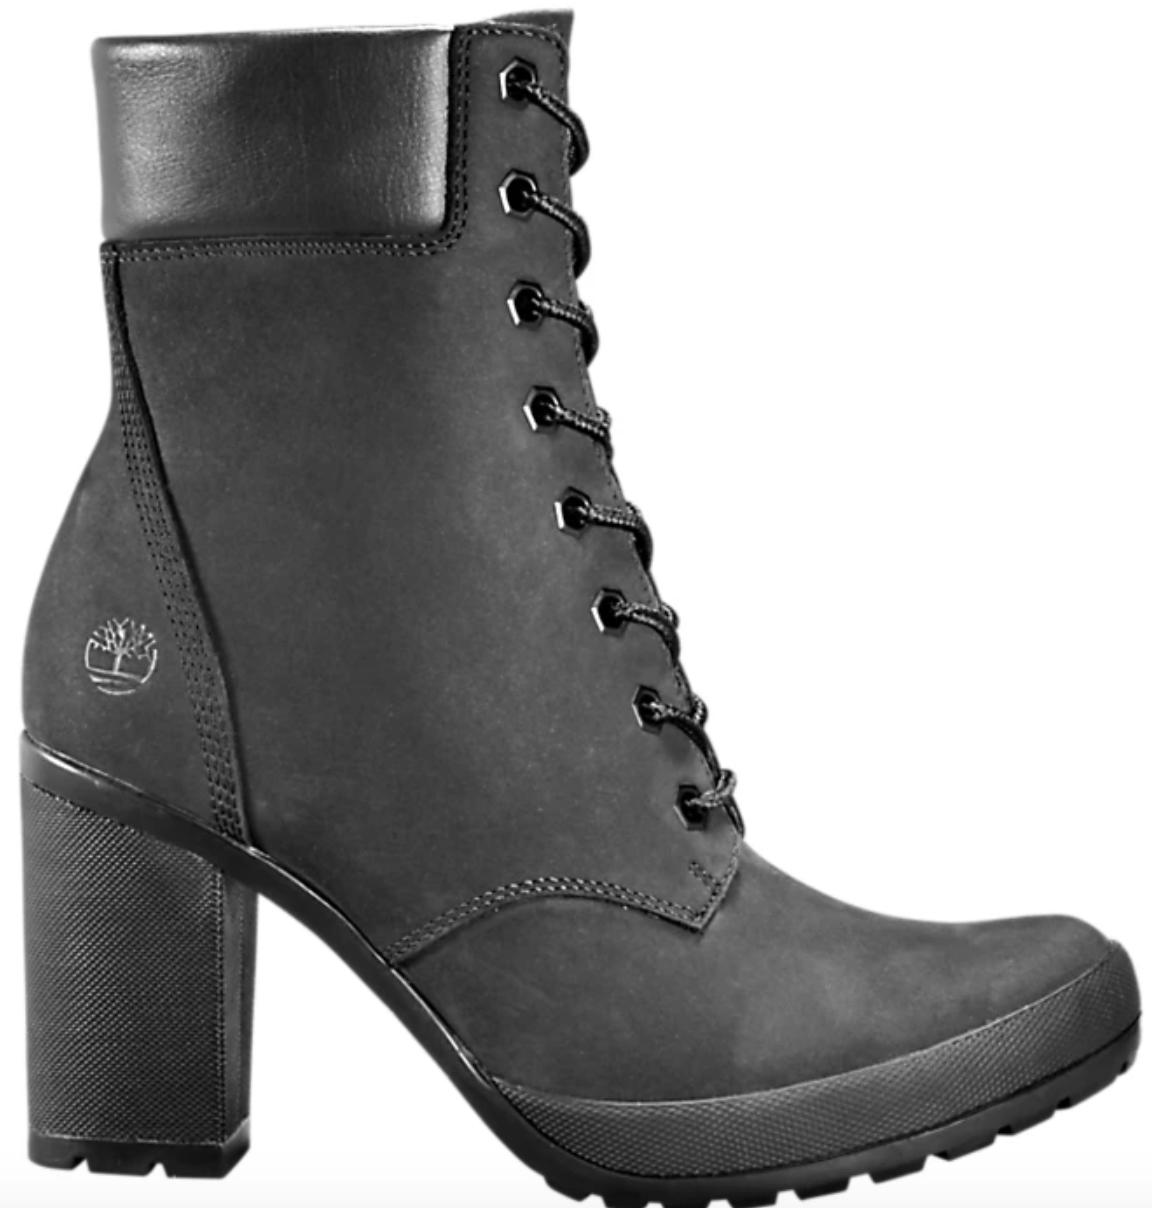 A black on black ankle boot.